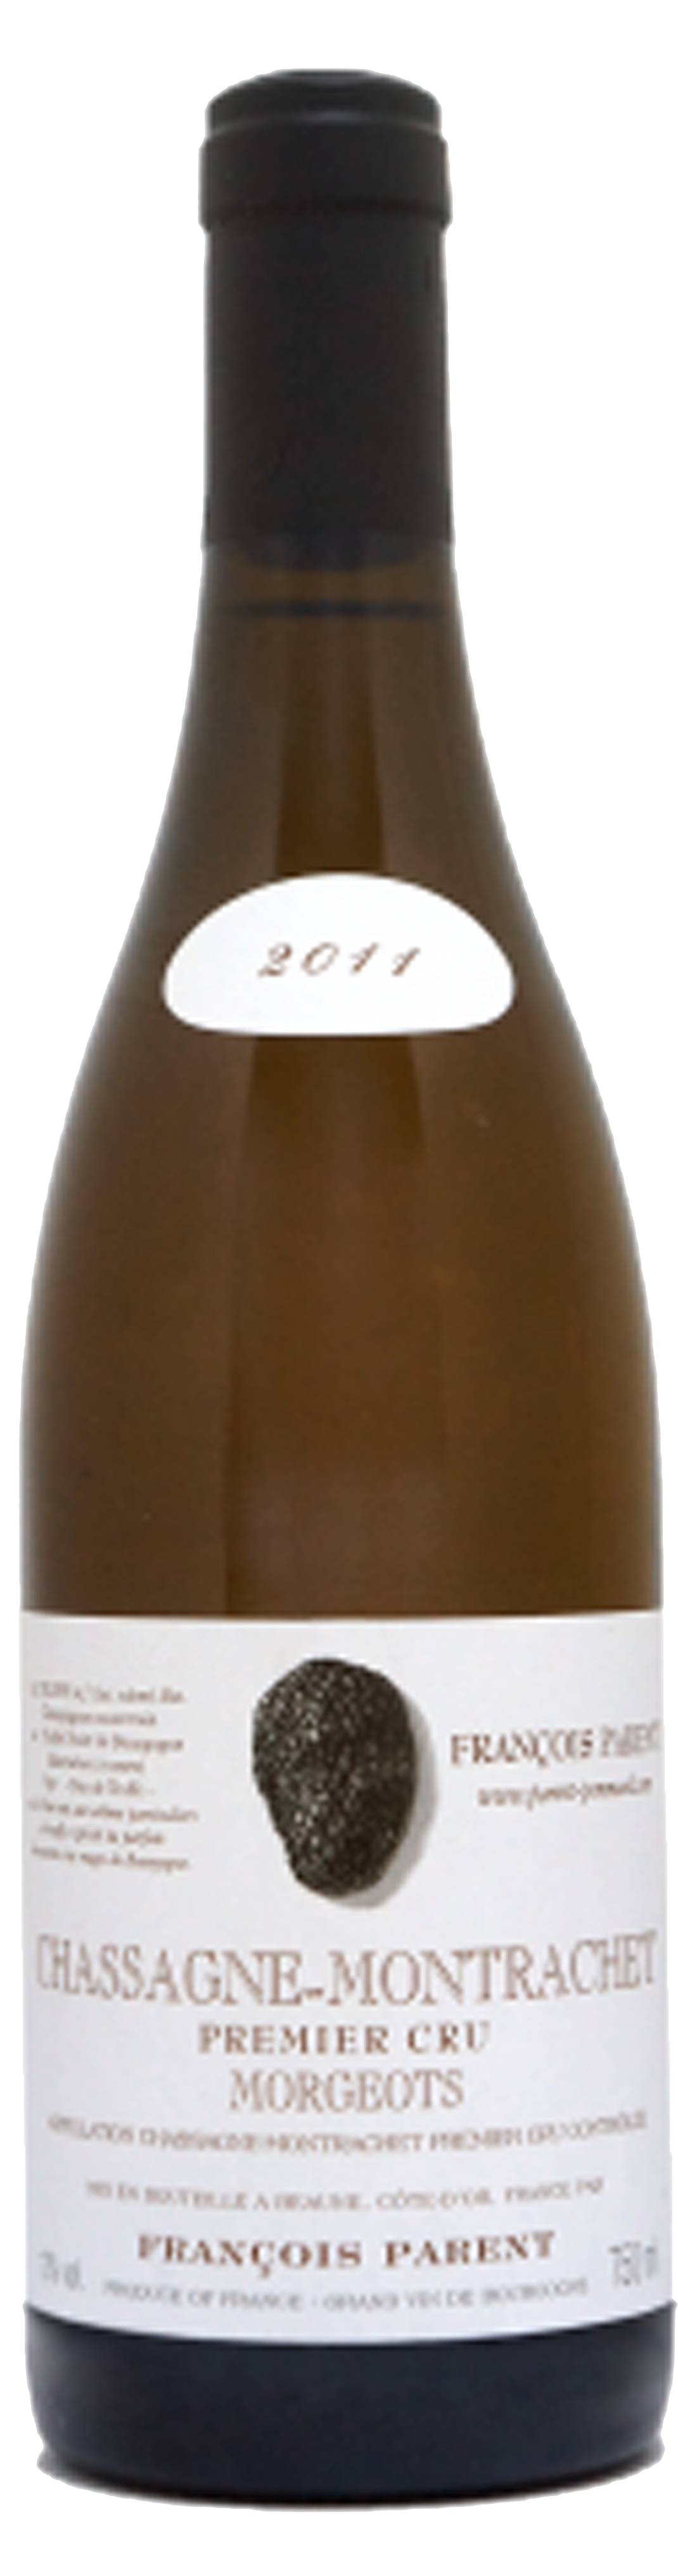 Image of product Chassagne Montrachet 1er Cru Morgeot